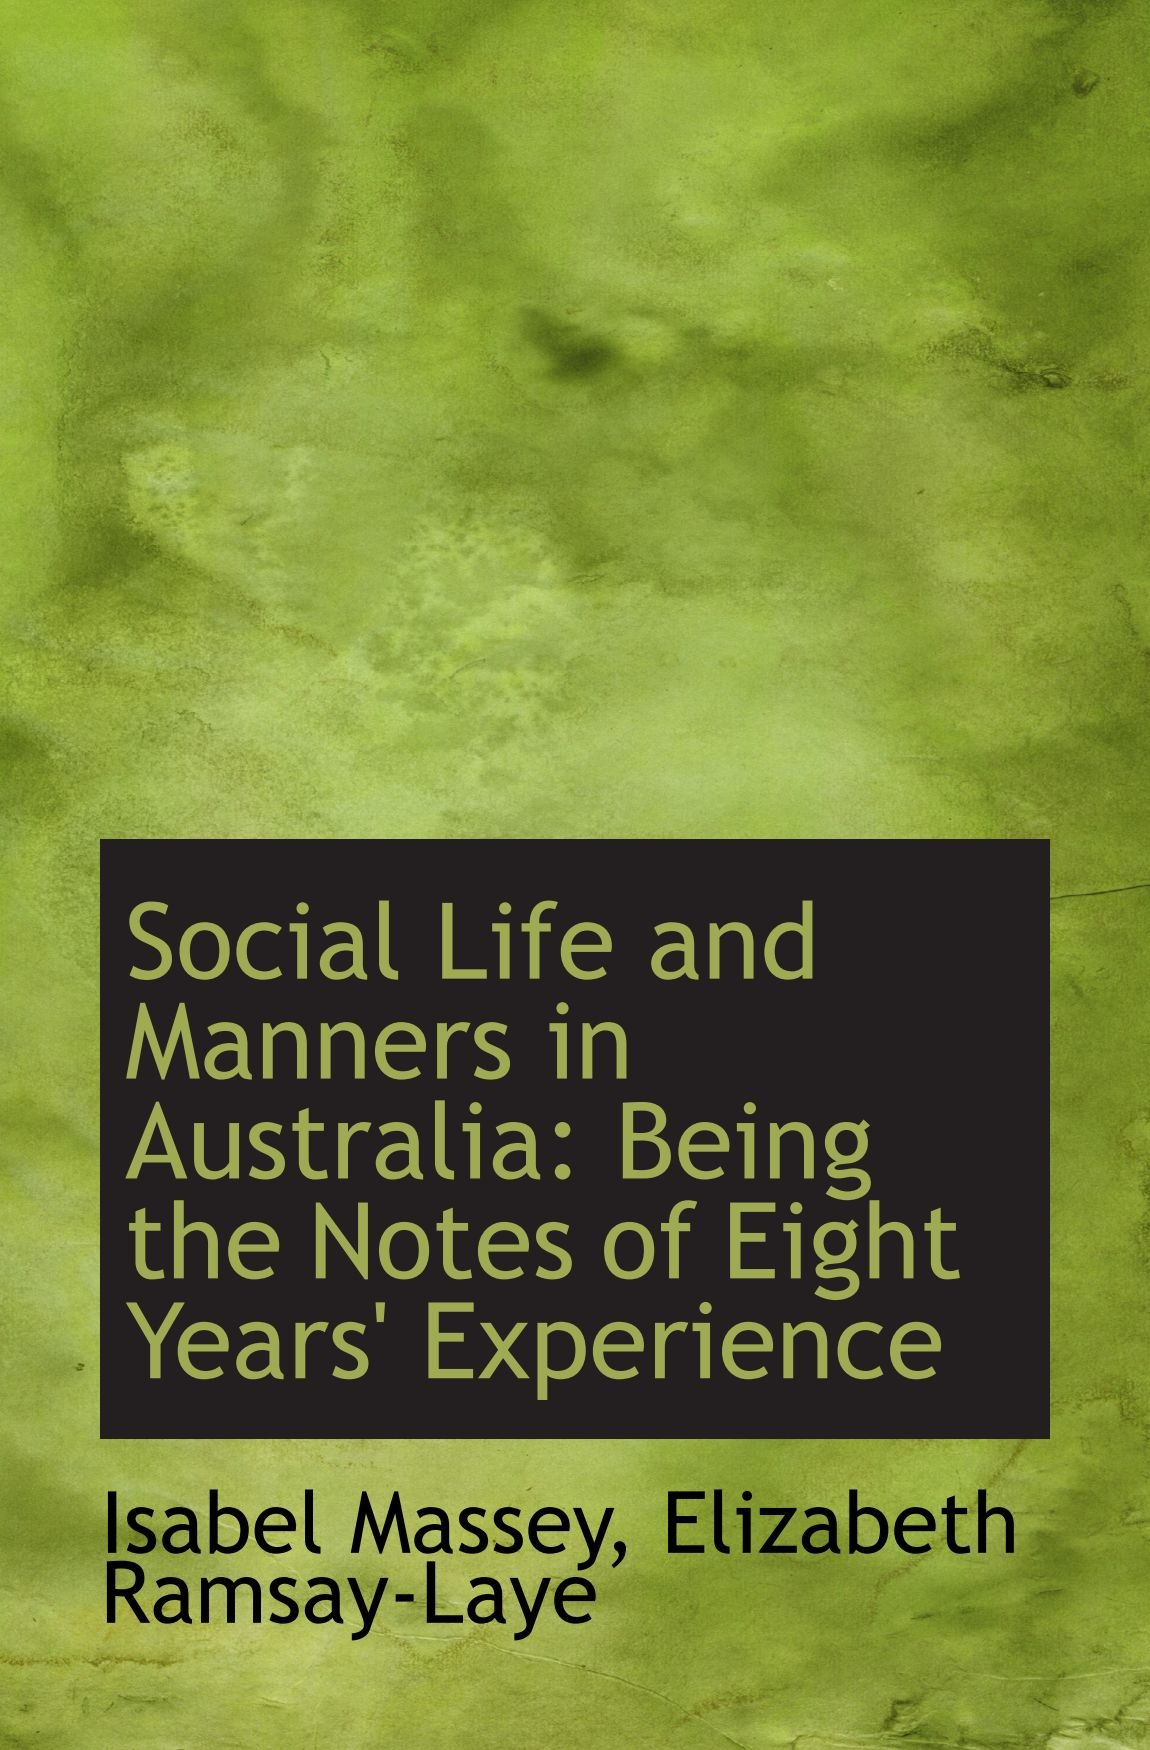 Social Life and Manners in Australia: Being the Notes of Eight Years' Experience PDF